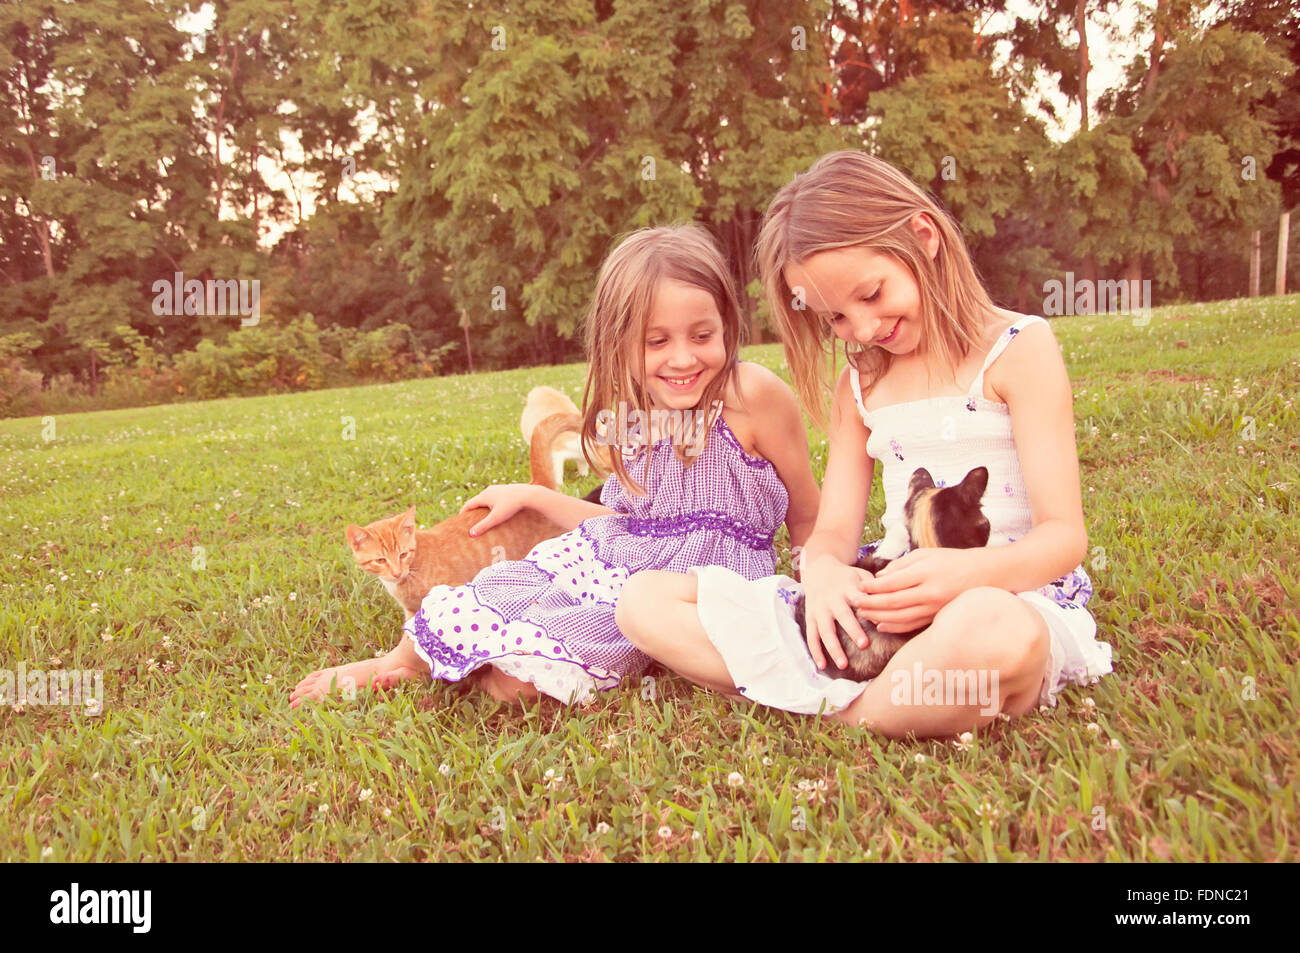 Two little girls with sundresses petting and holding kittens - Stock Image